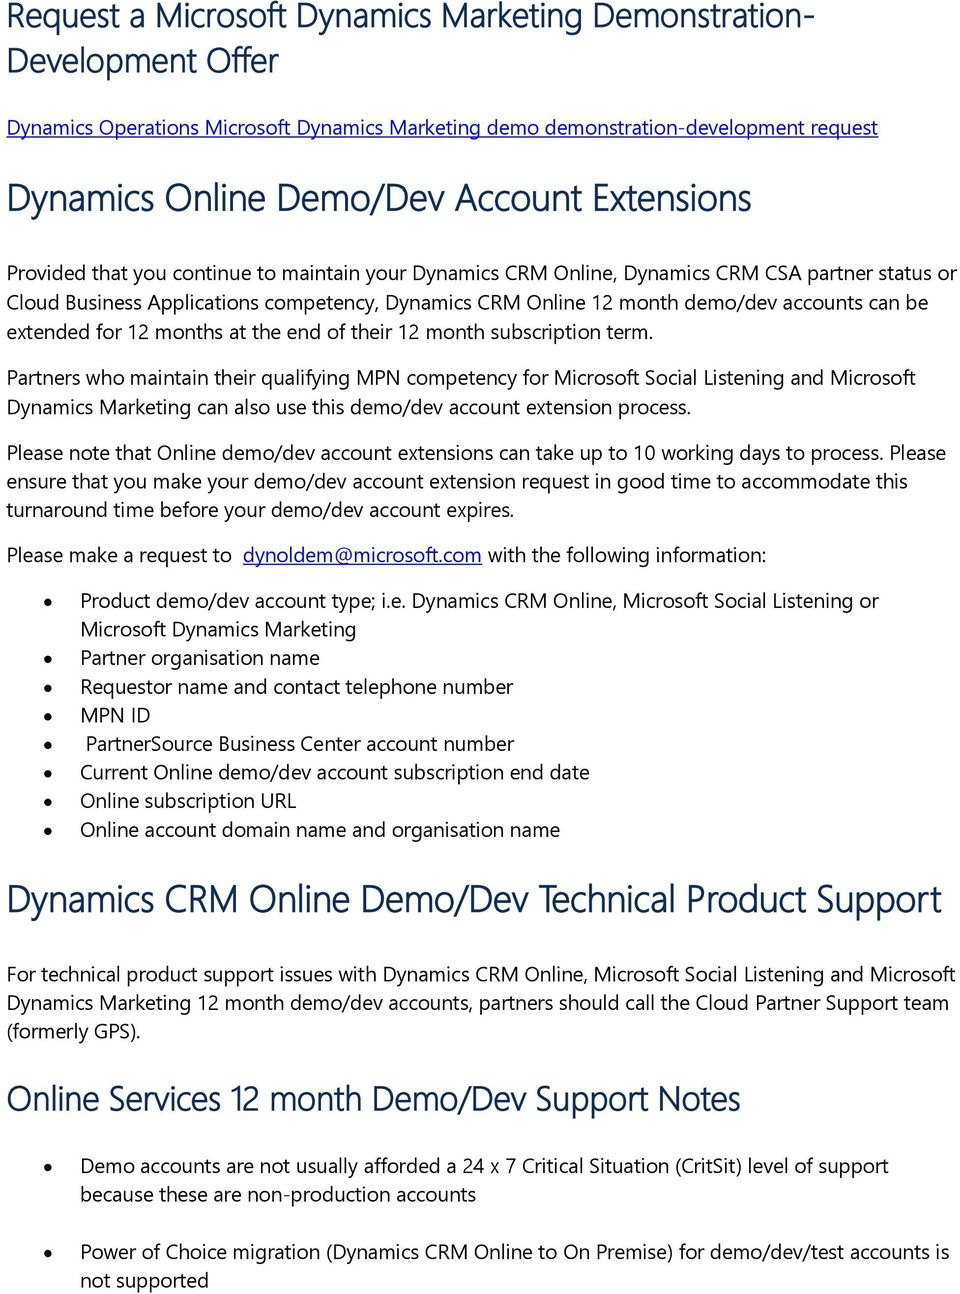 Dynamics Online Services 12 Month Partner Demonstration